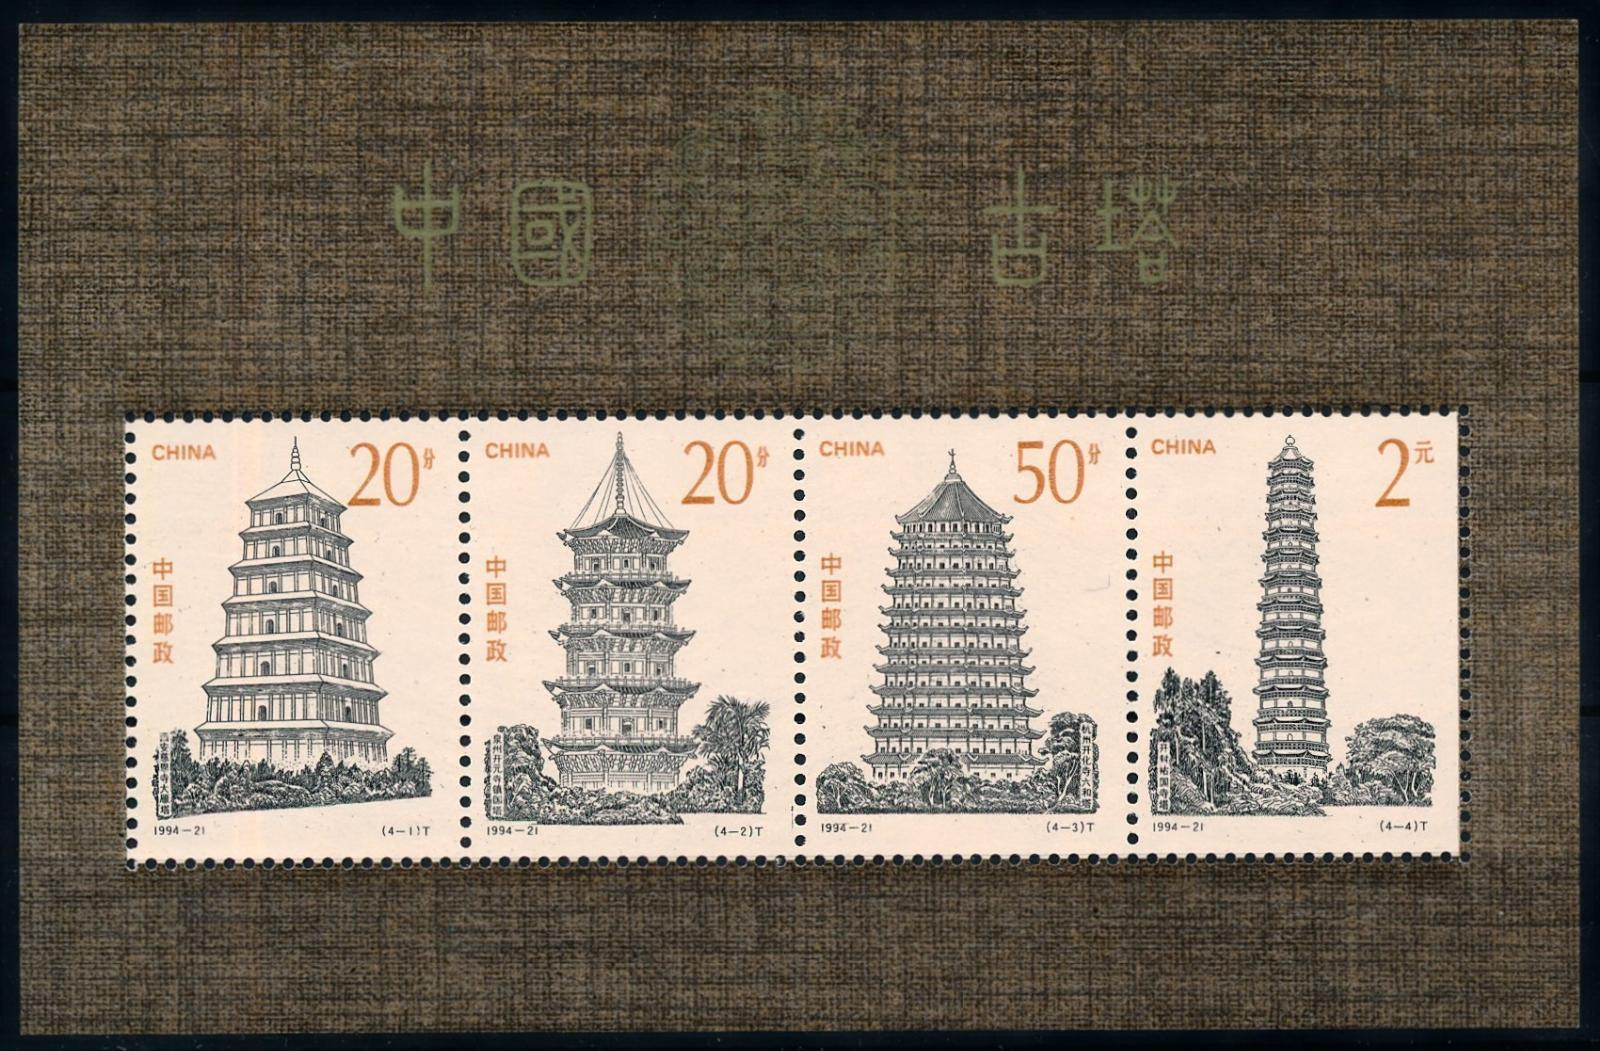 People's Republic of China - Scott #2548a (1994) Ancient Pagodas souvenir sheet; ASAD article #970 today details the Iron Pagoda on the 2-yuan stamp from this set.